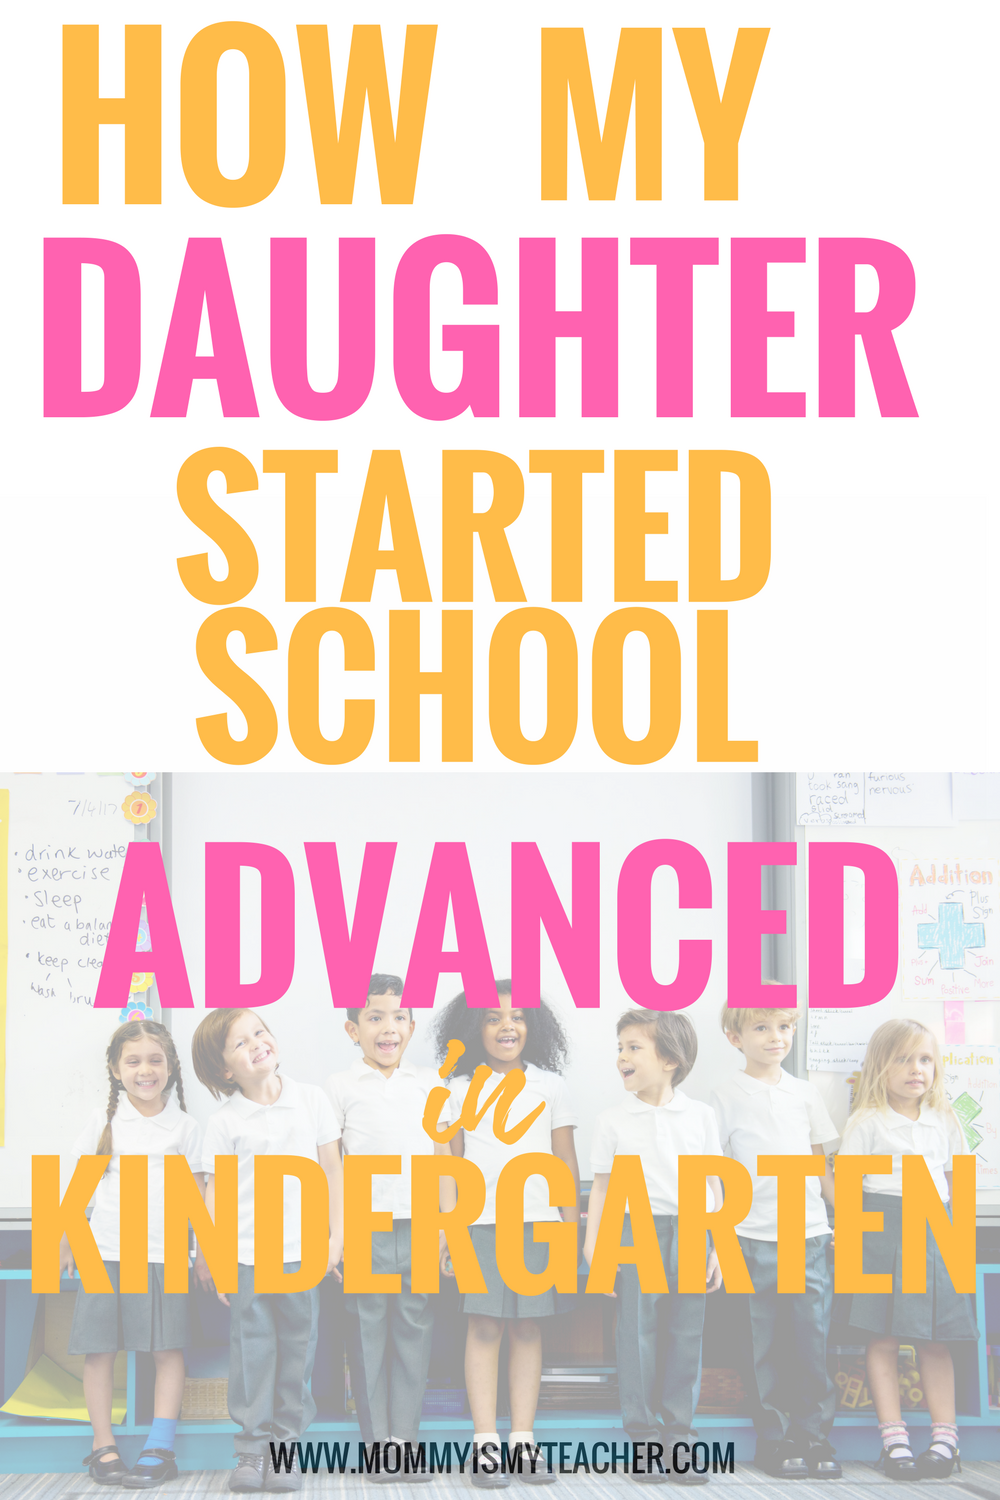 Wow, this really helps me teach my daughter to prepare her for kindergarten readiness! This is so easy for preschool activities at home and for my preschool homeschool curriculum.